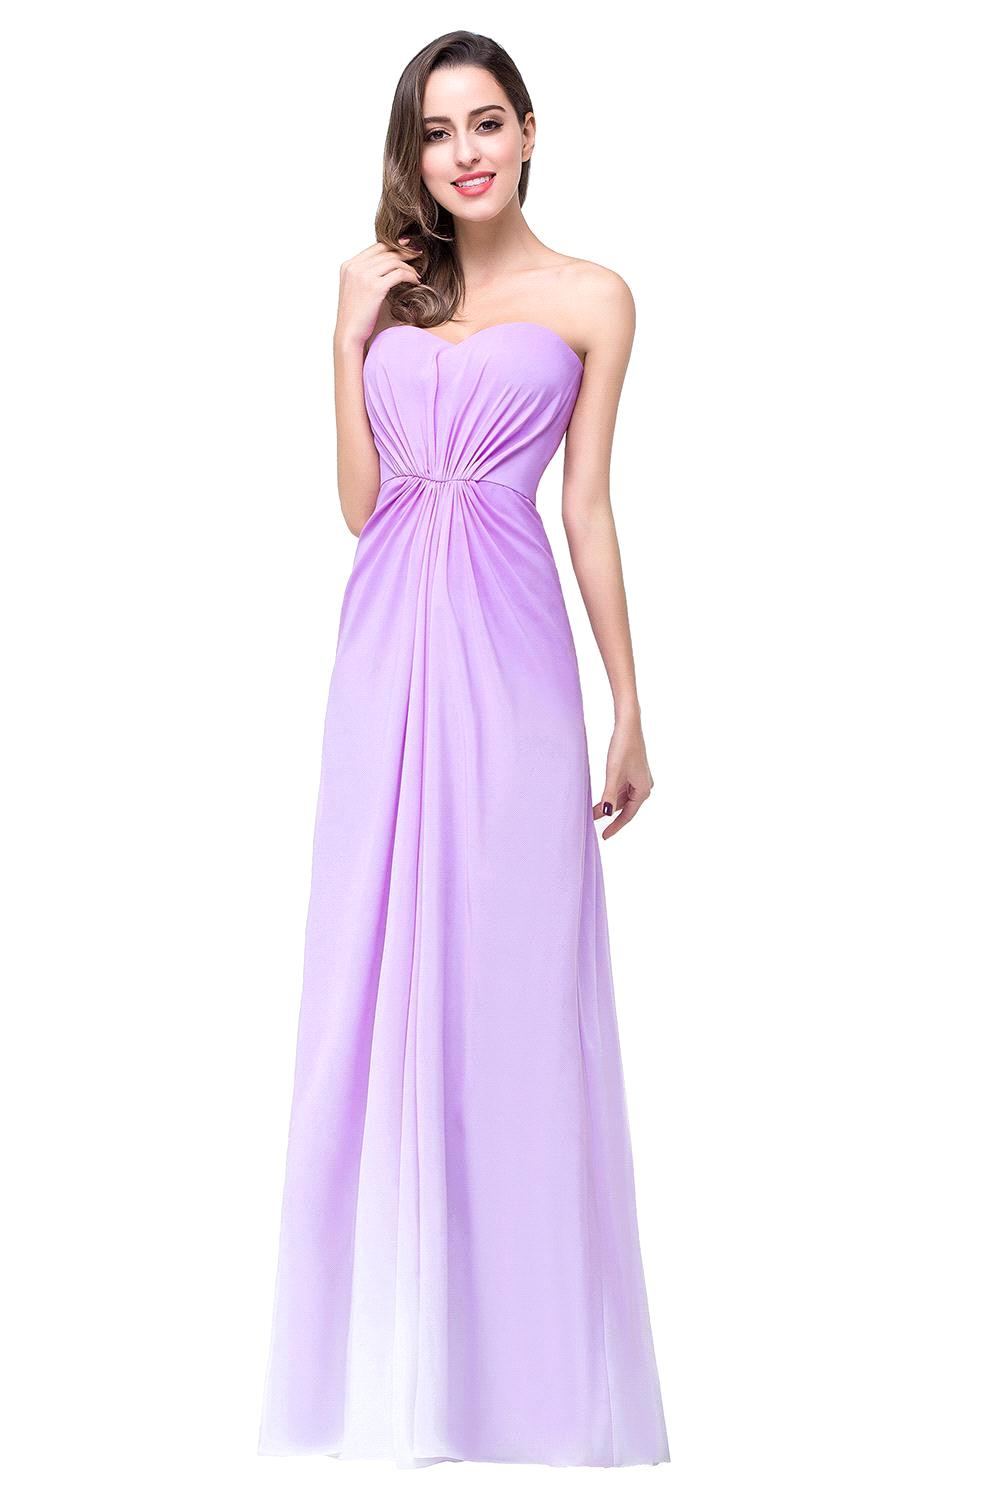 Online get cheap gradient dress bridesmaid aliexpress fashion 2017 shortlong chiffon purple gradient bridesmaid dresses sweetheart empire waist wedding party dress ombrellifo Image collections